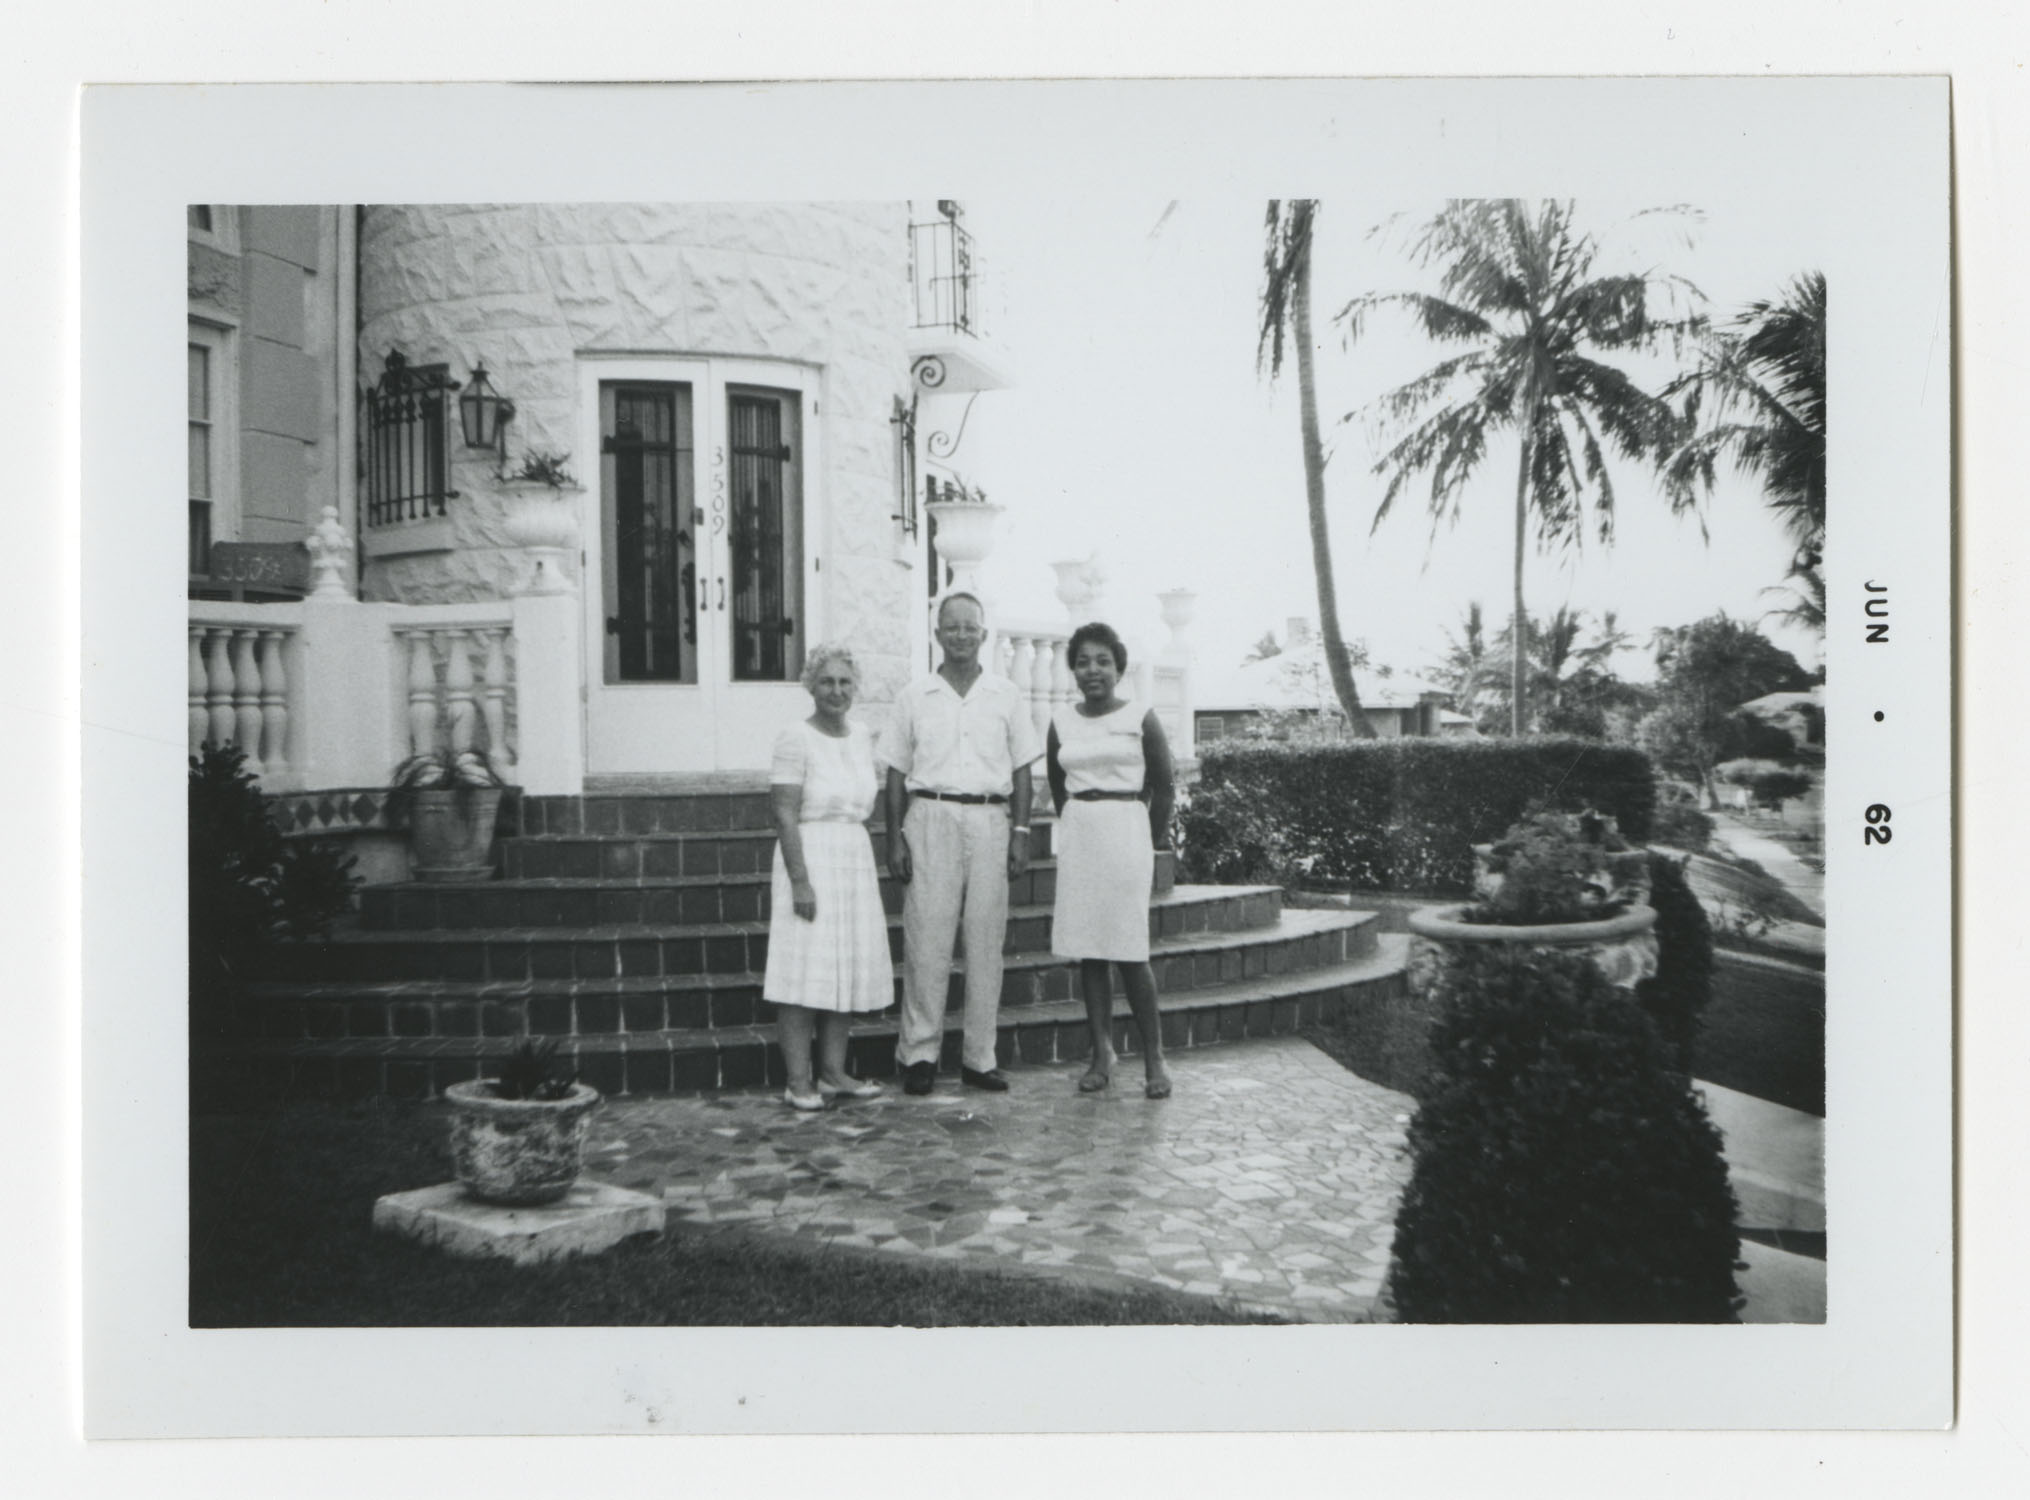 Three People Standing Outside of a House, June 1962